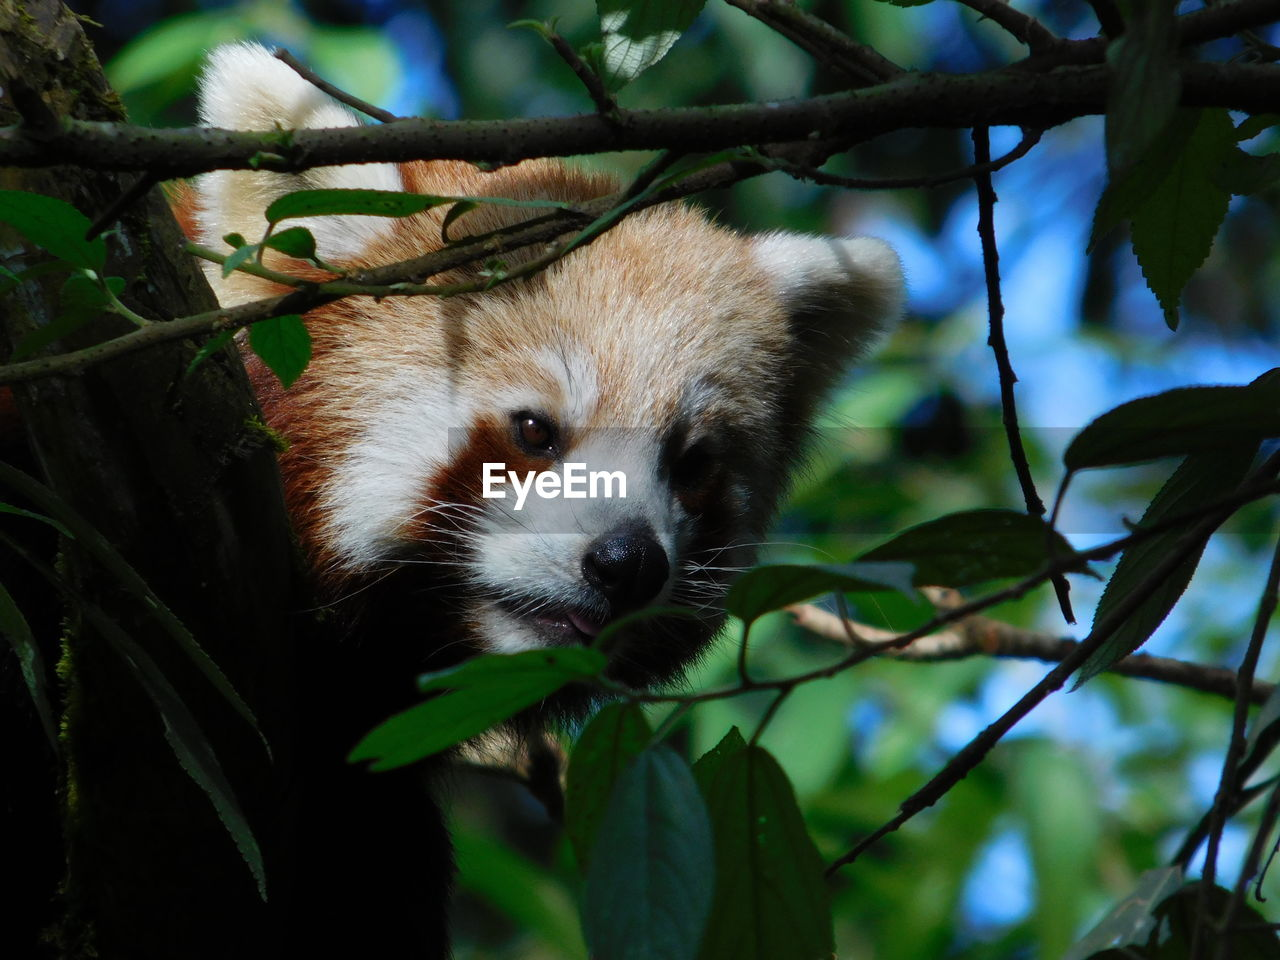 one animal, animal themes, animal, tree, mammal, animal wildlife, plant, red panda, animals in the wild, branch, focus on foreground, leaf, plant part, vertebrate, panda - animal, nature, no people, day, close-up, looking, outdoors, animal head, whisker, bamboo - plant